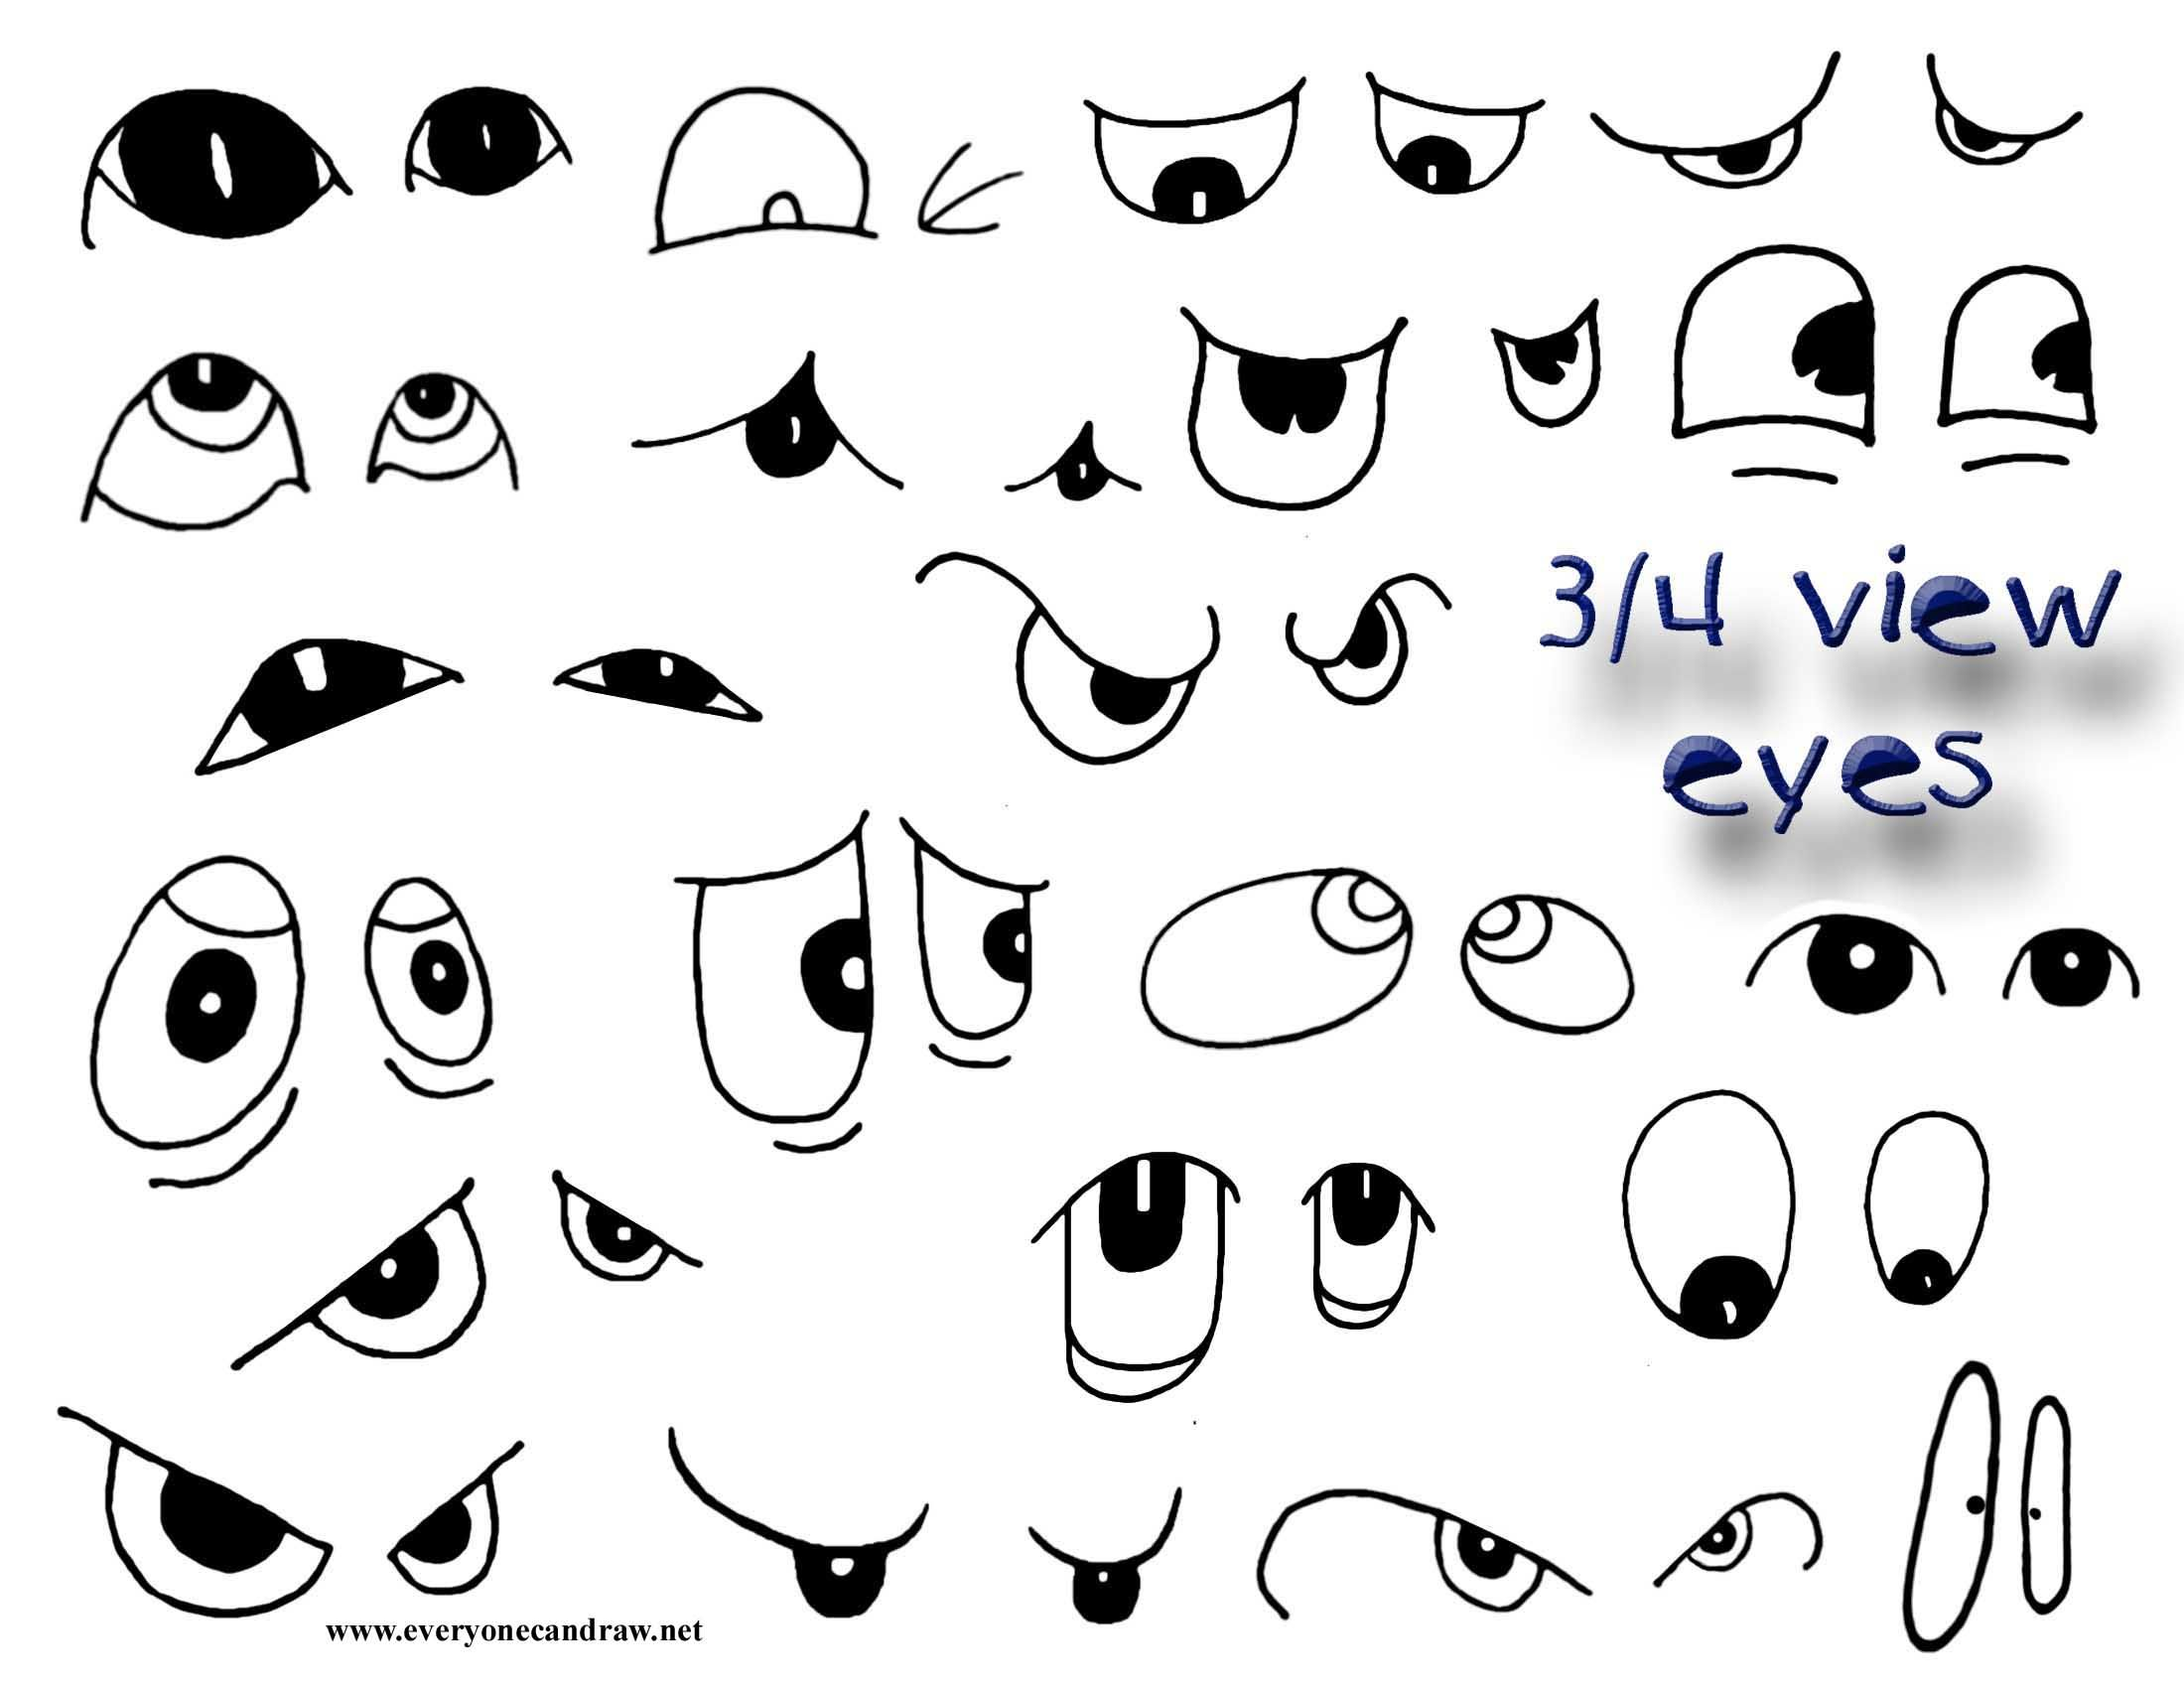 Three Quarter View Cartoon Eyes Cartoon Drawings Cartoon Eyes Drawings